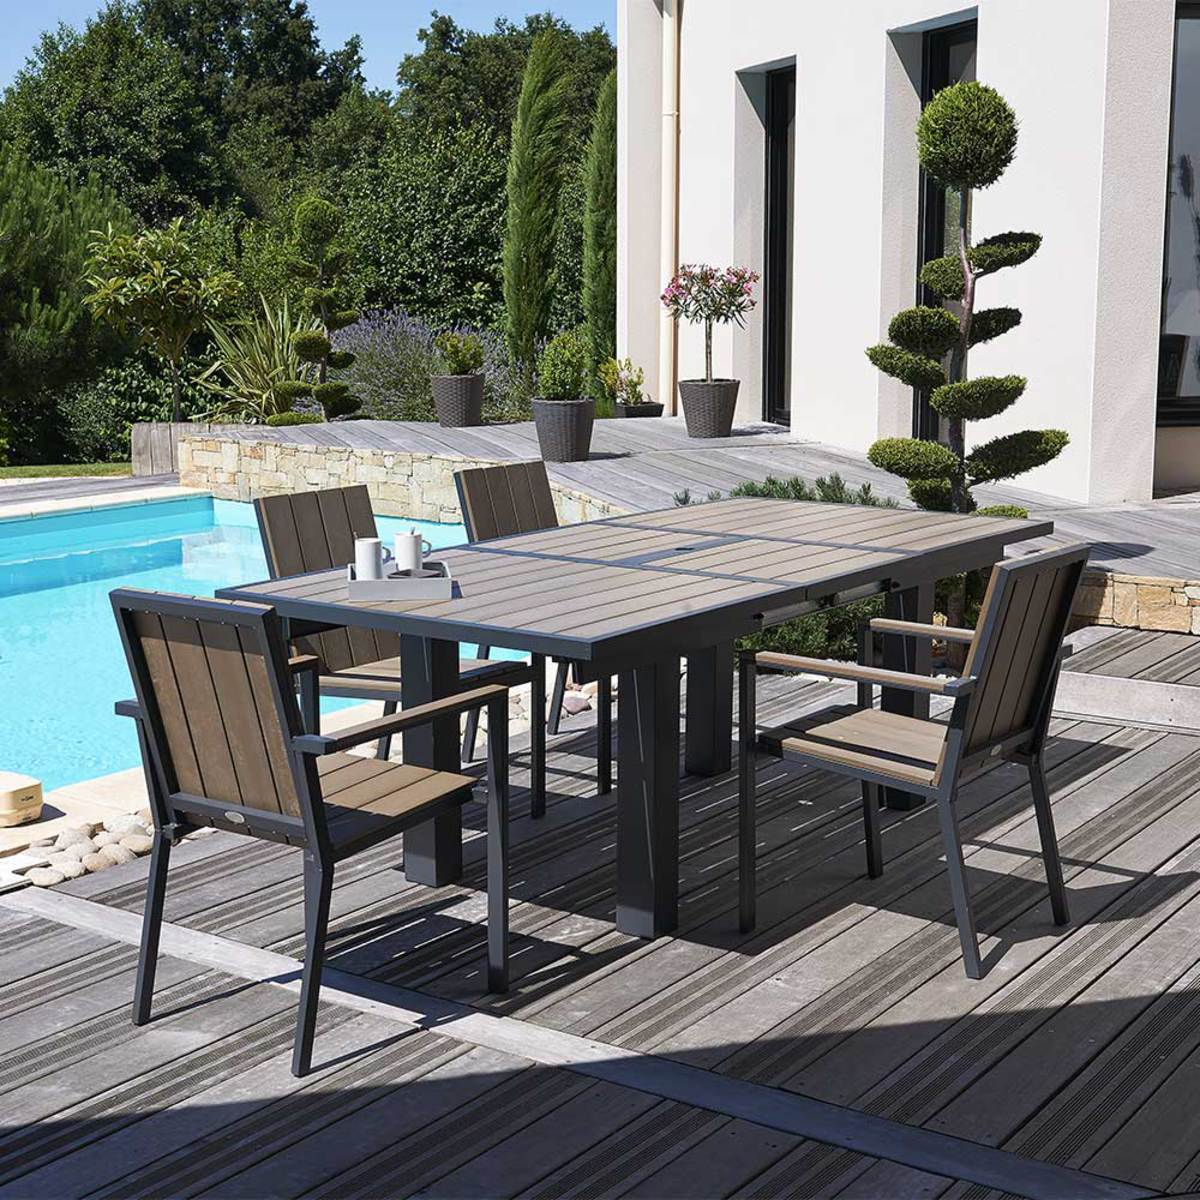 salon de jardin aluminium soldes 12 id es de d coration. Black Bedroom Furniture Sets. Home Design Ideas